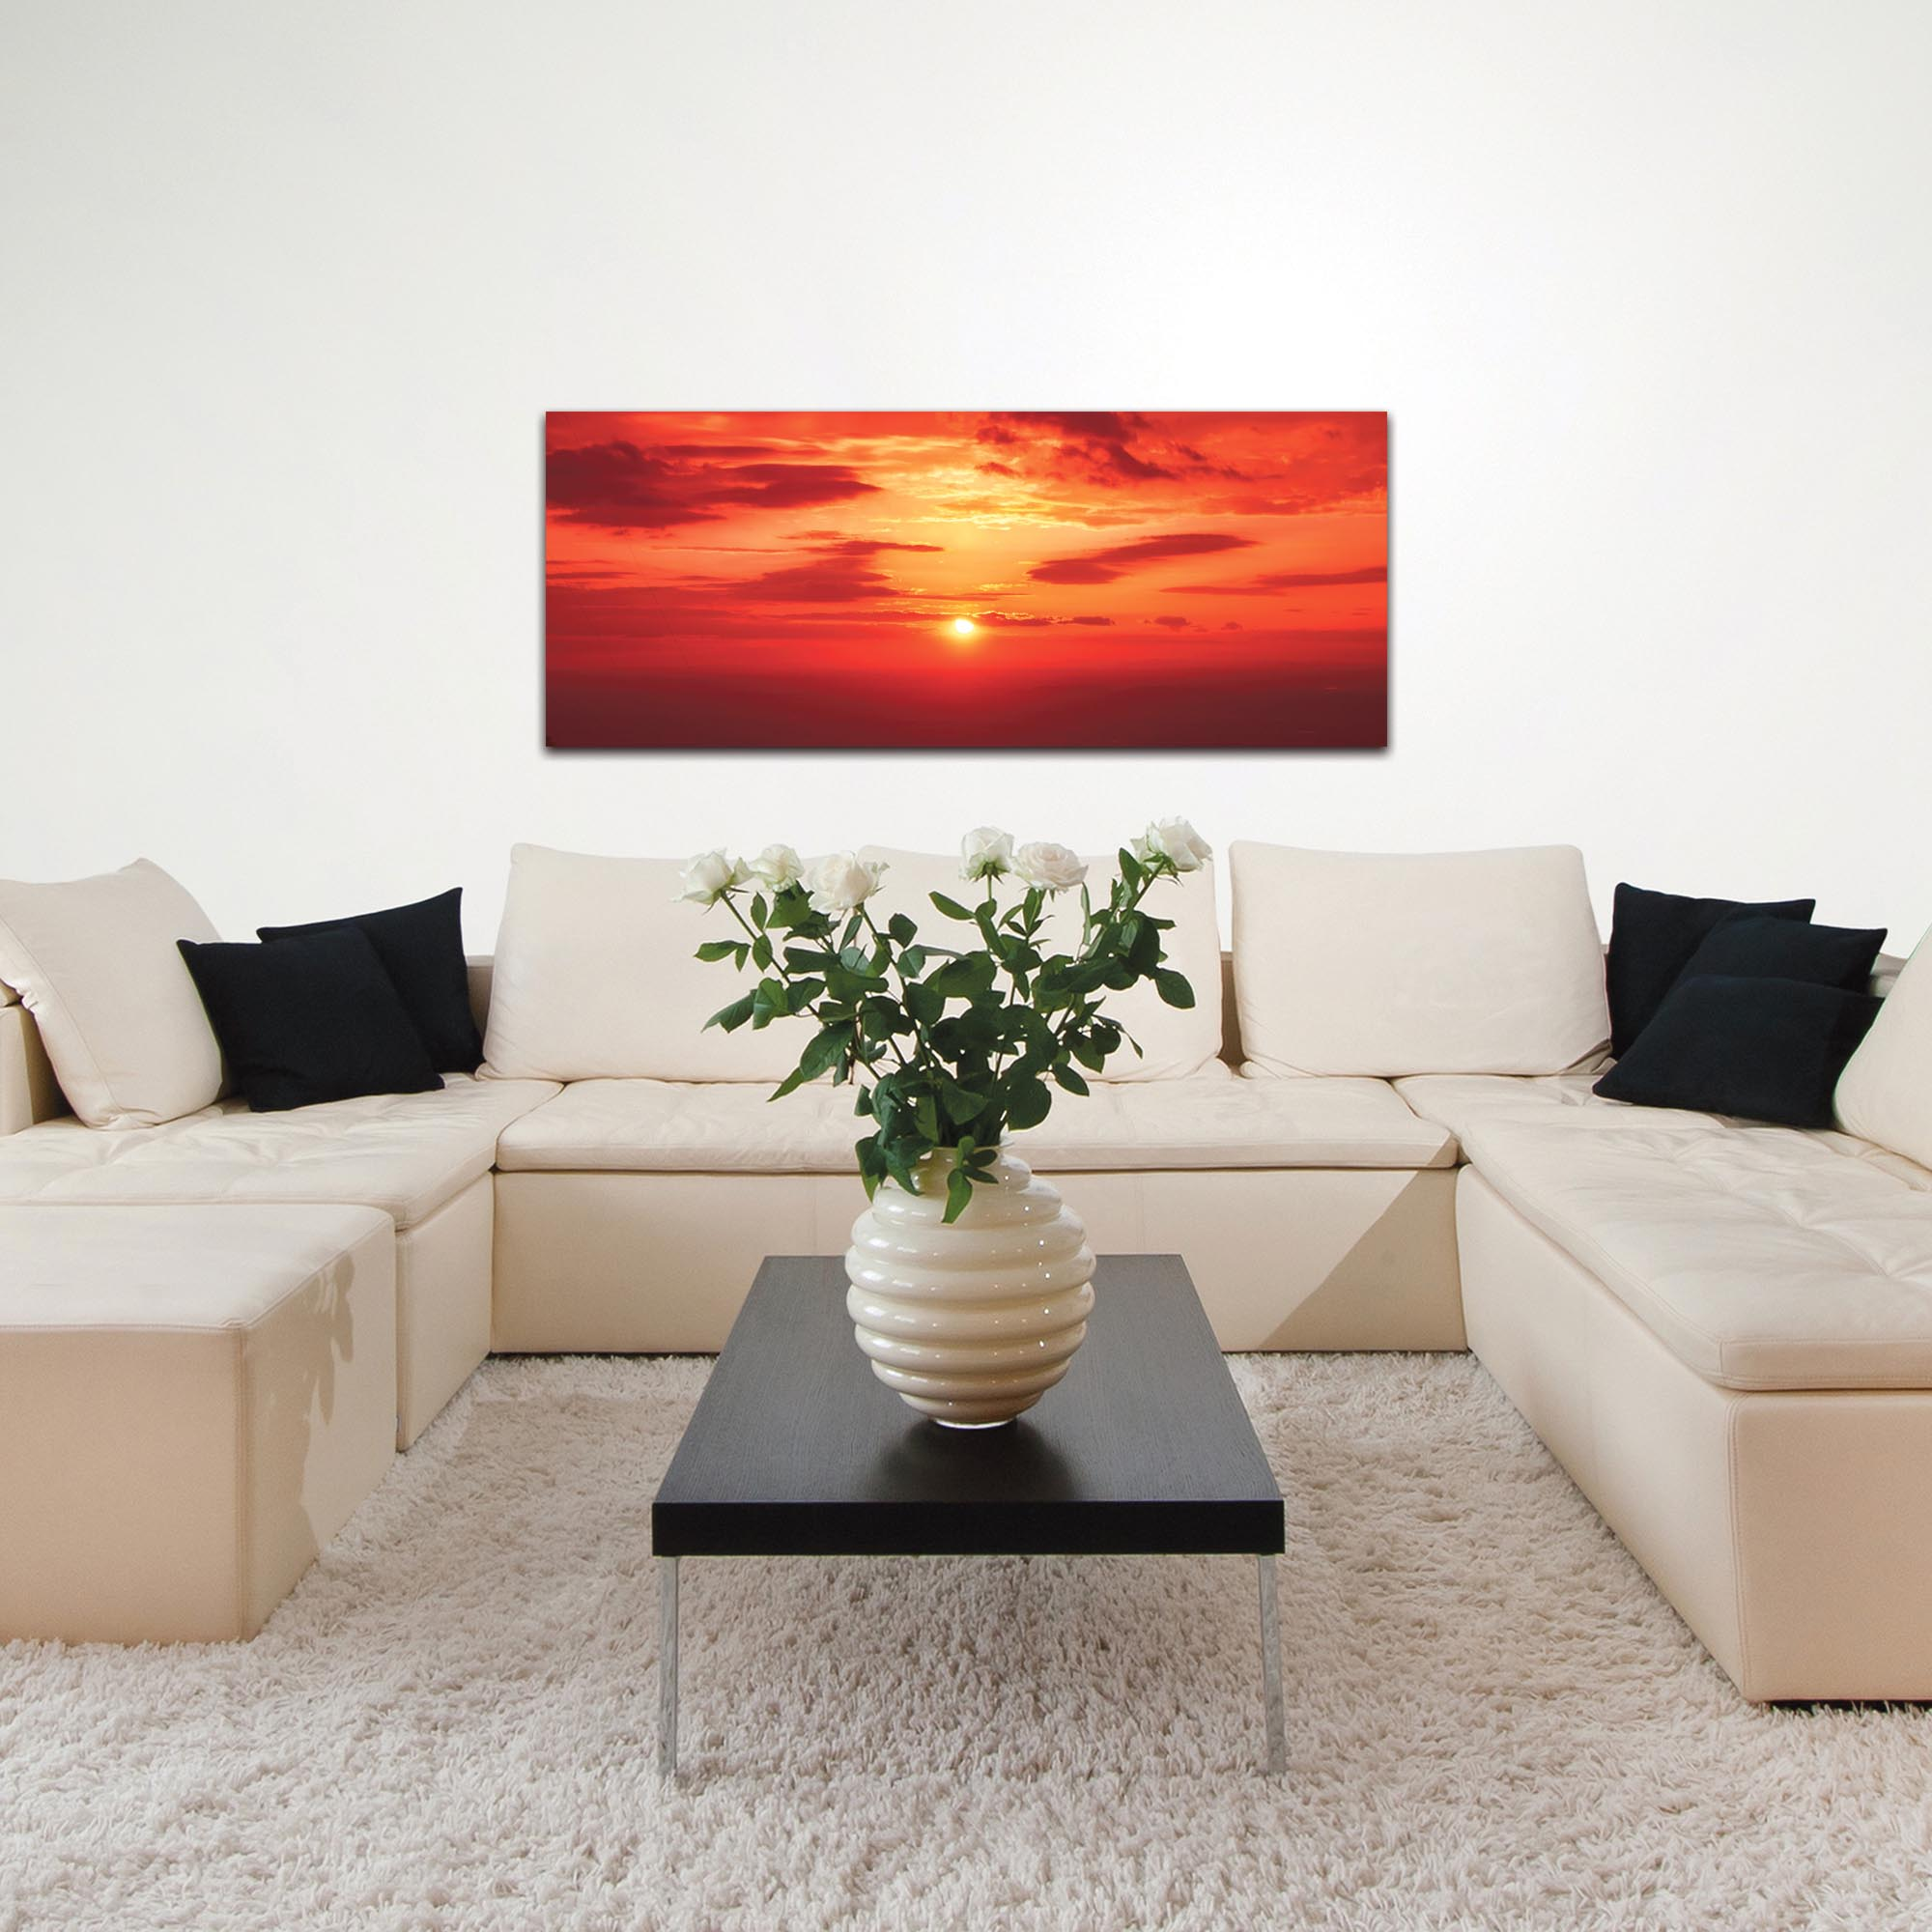 Landscape Photography 'Skies of Flame' - Sunset Art on Metal or Plexiglass - Lifestyle View